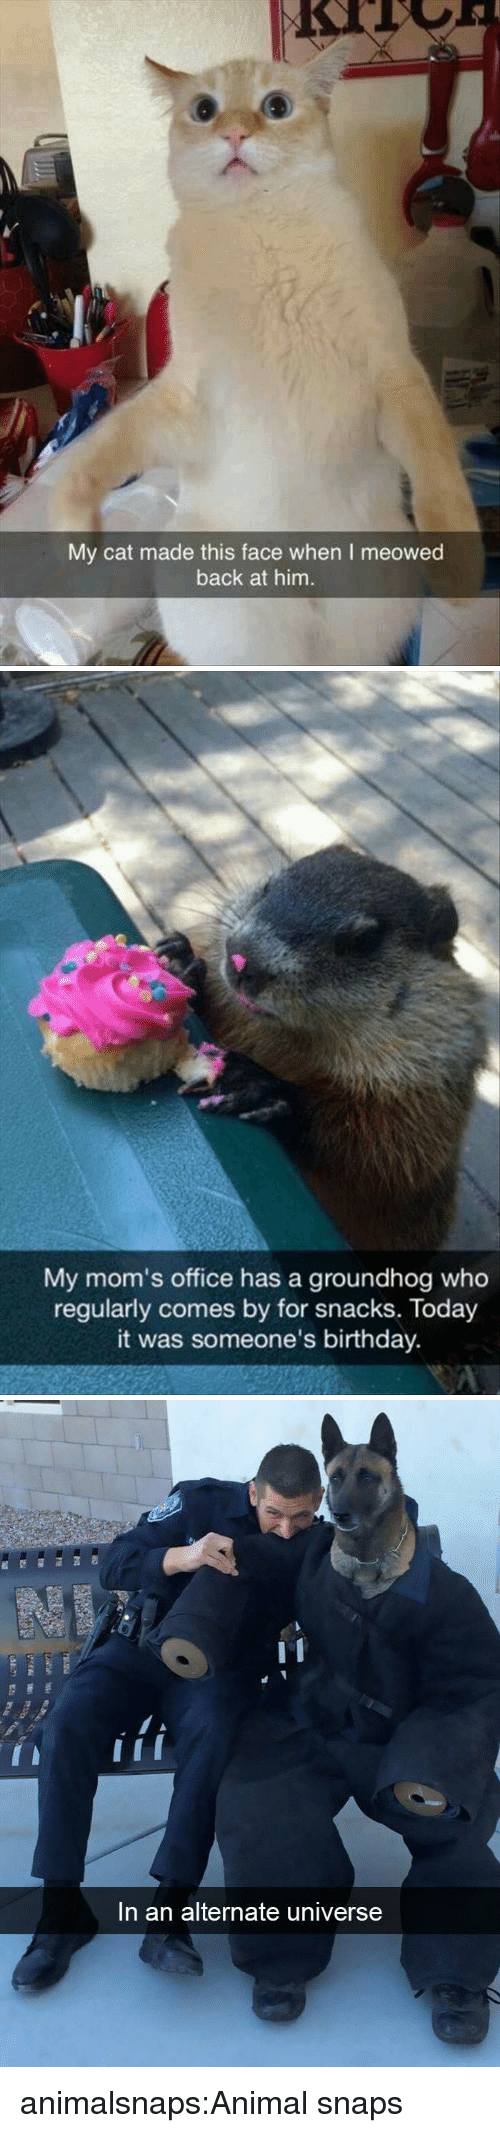 groundhog: My cat made this face when I meowed  back at him.   My mom's office has a groundhog who  regularly comes by for snacks. Today  it was someone's birthday.   In an alternate universe animalsnaps:Animal snaps